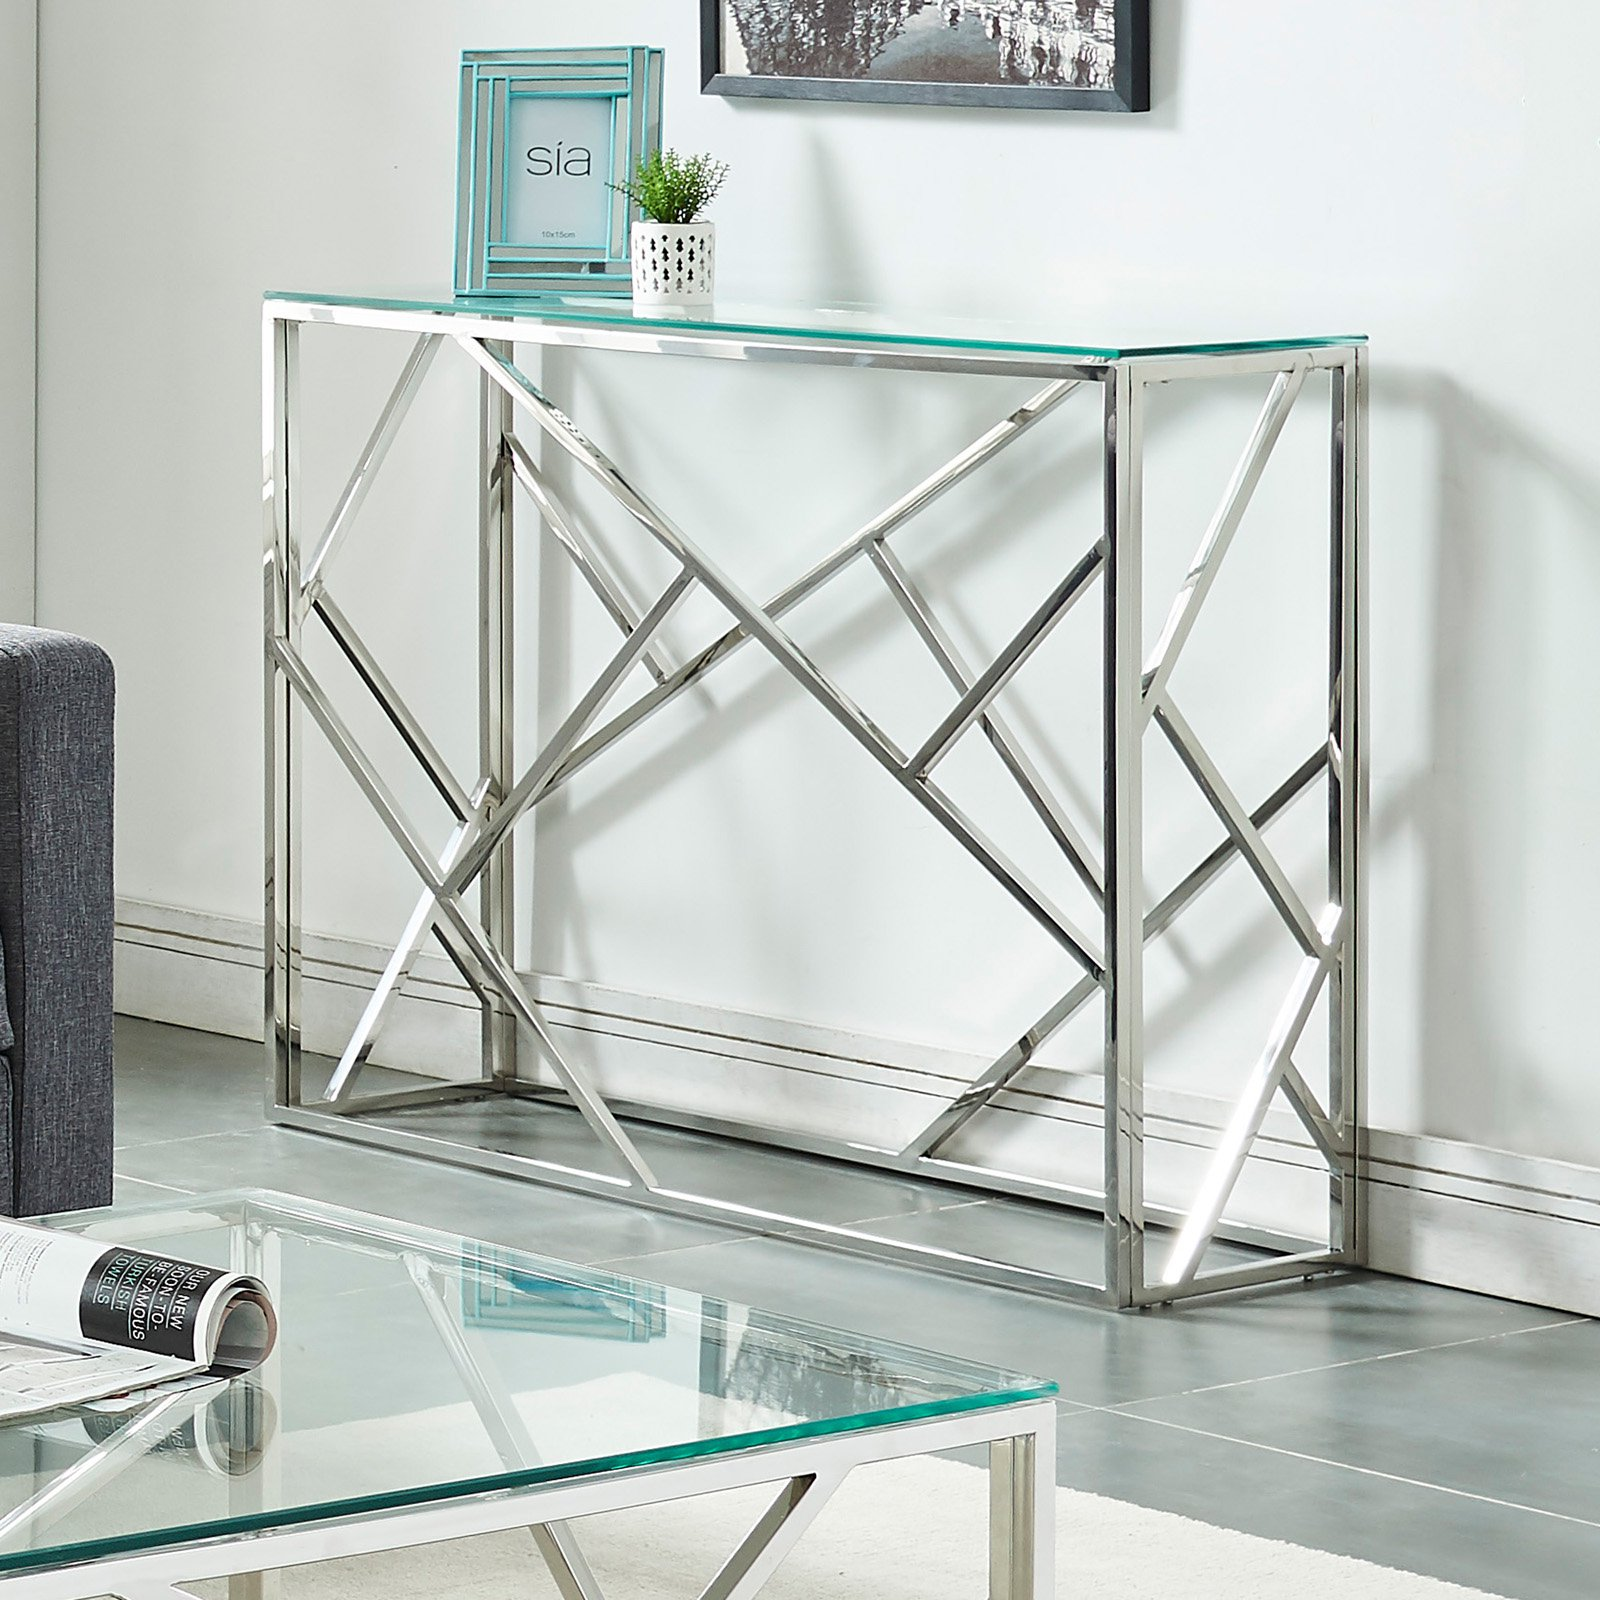 !nspire Stainless Steel Line Design Console Table